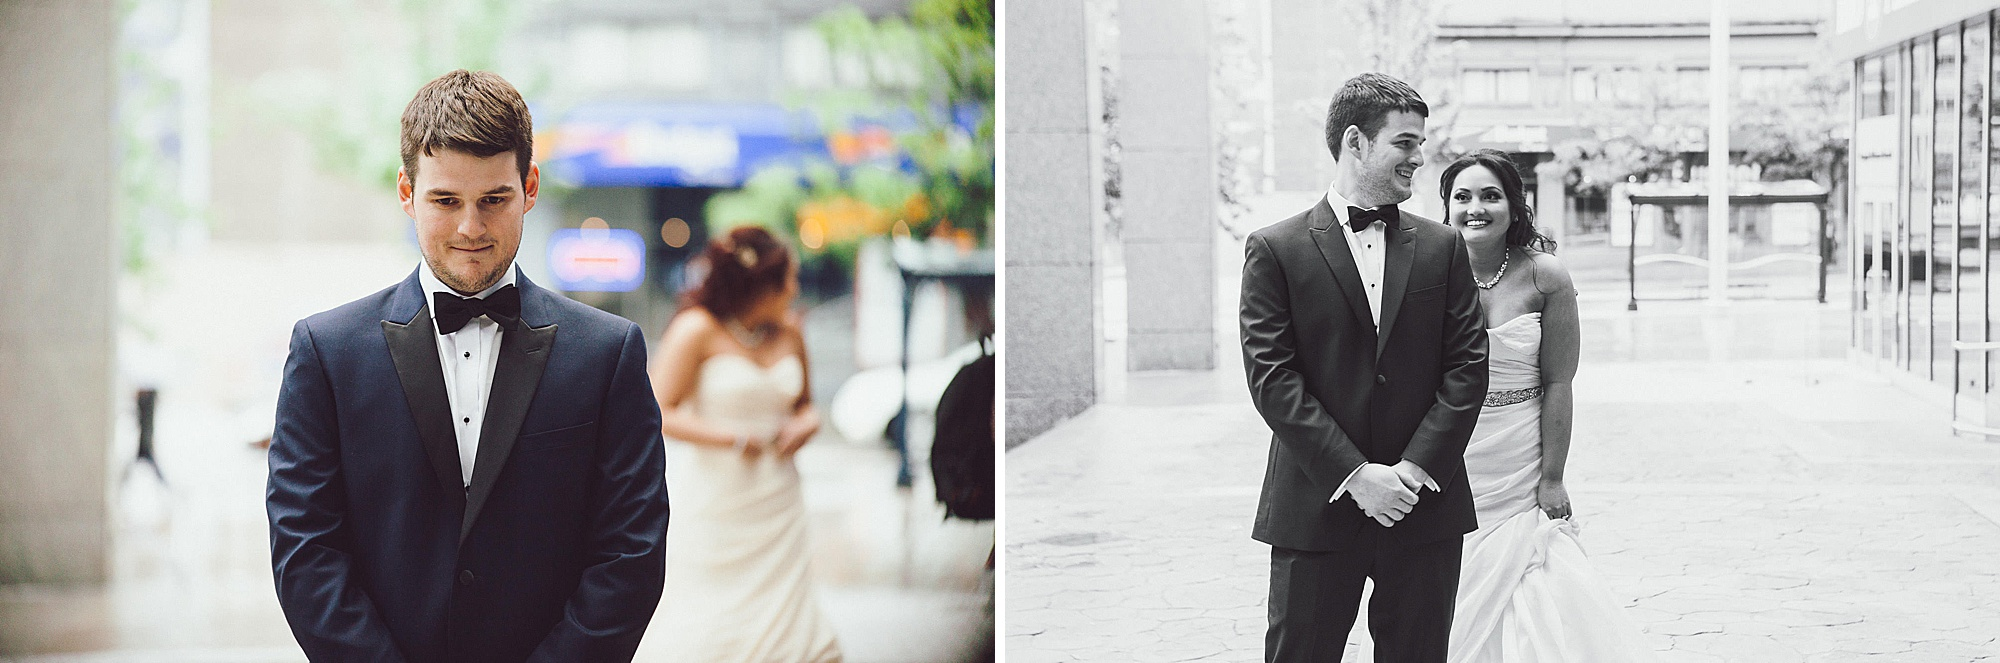 Bride walks up to groom during a First Look